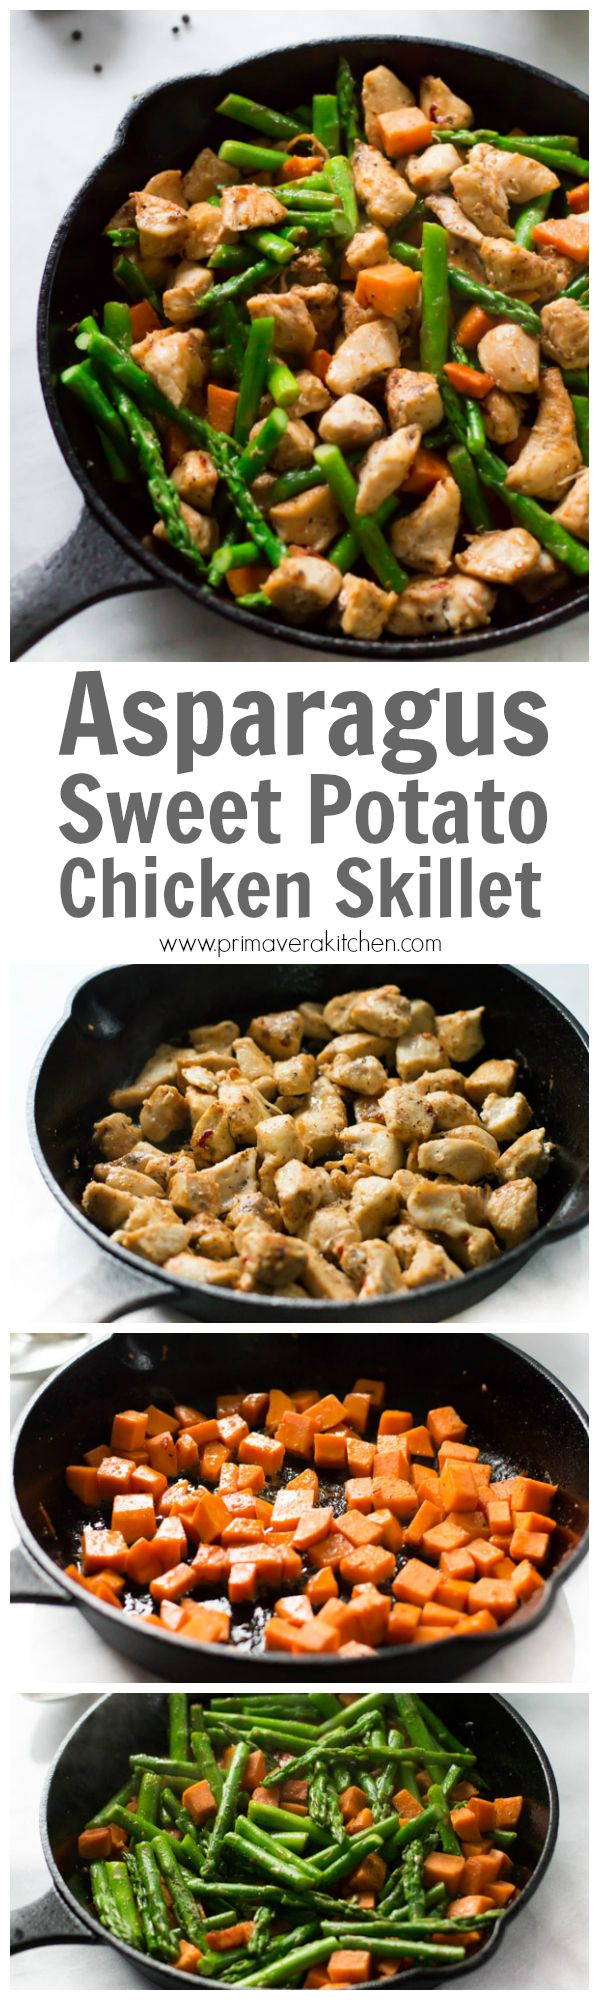 8/2016 this was very good asparagus needs to be put in sooner and it requires more liquid -B.......This Asparagus Sweet Potato Chicken Skillet recipe is a delicious healthy and easy to make meal that will be on your dinner table in less than 30 minutes. This is a gluten-free and paleo for your busy weeknight dinner.